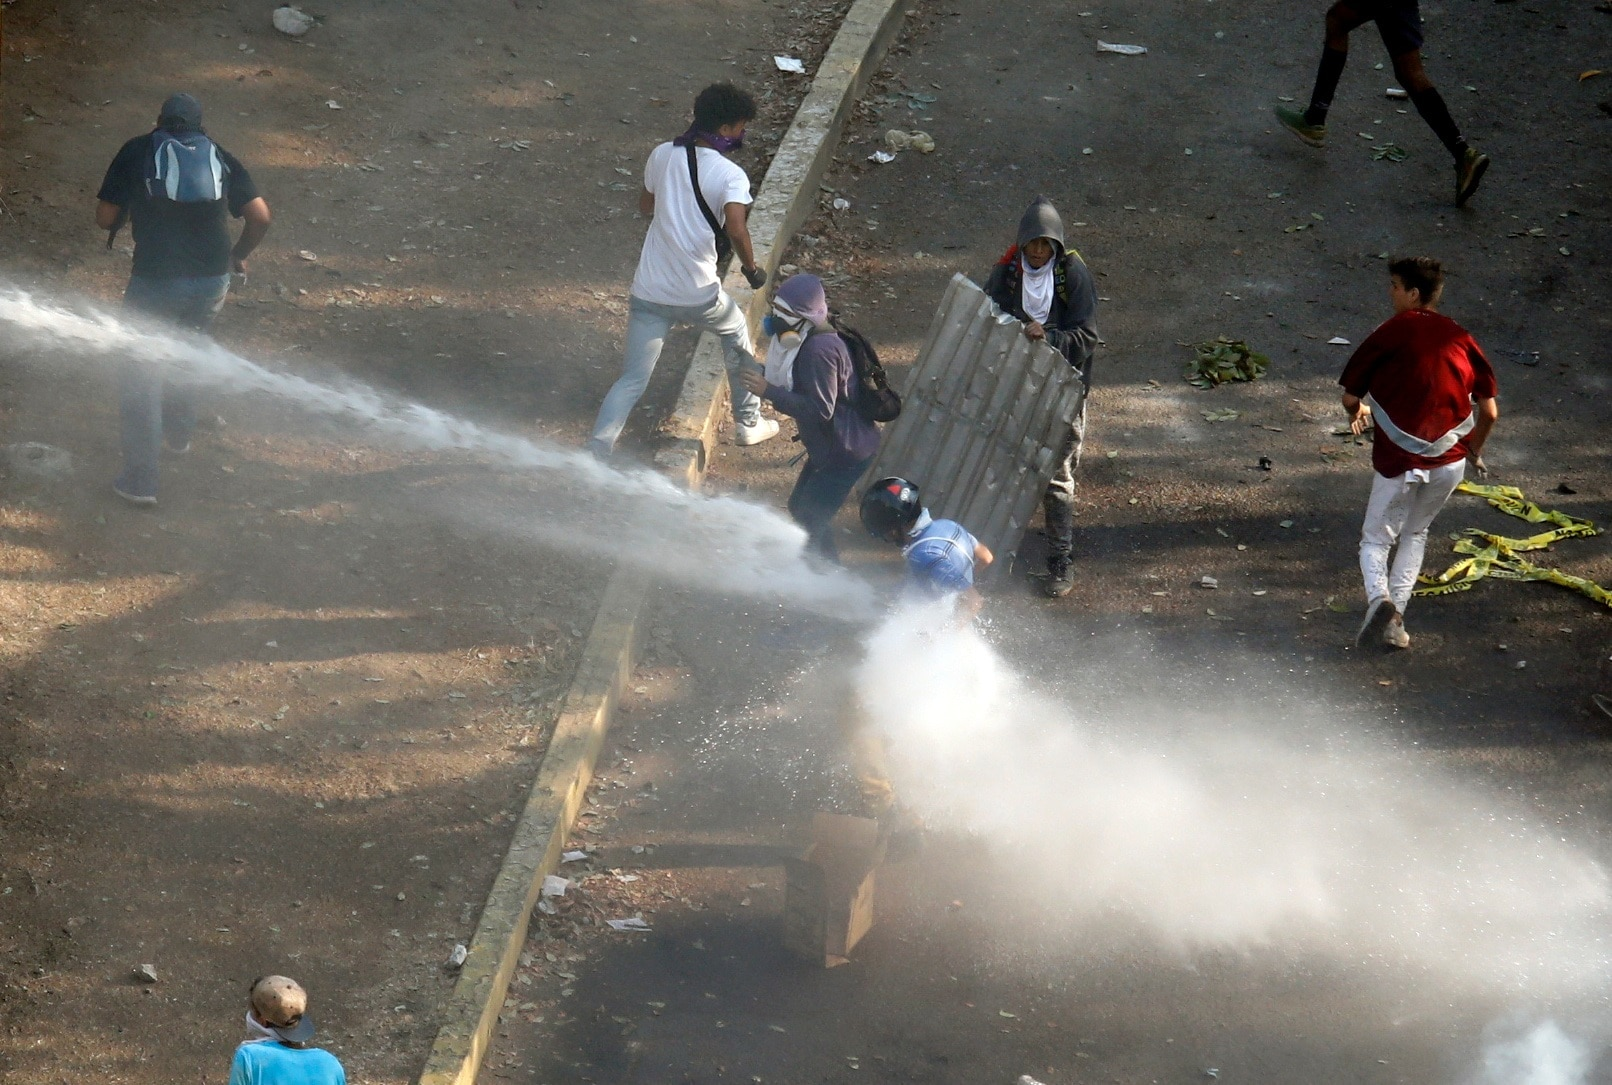 A demonstrator is being sprayed with water during clashes with security forces in Caracas Venezuela, May 1, 2019. REUTERS/Adriana Loureiro